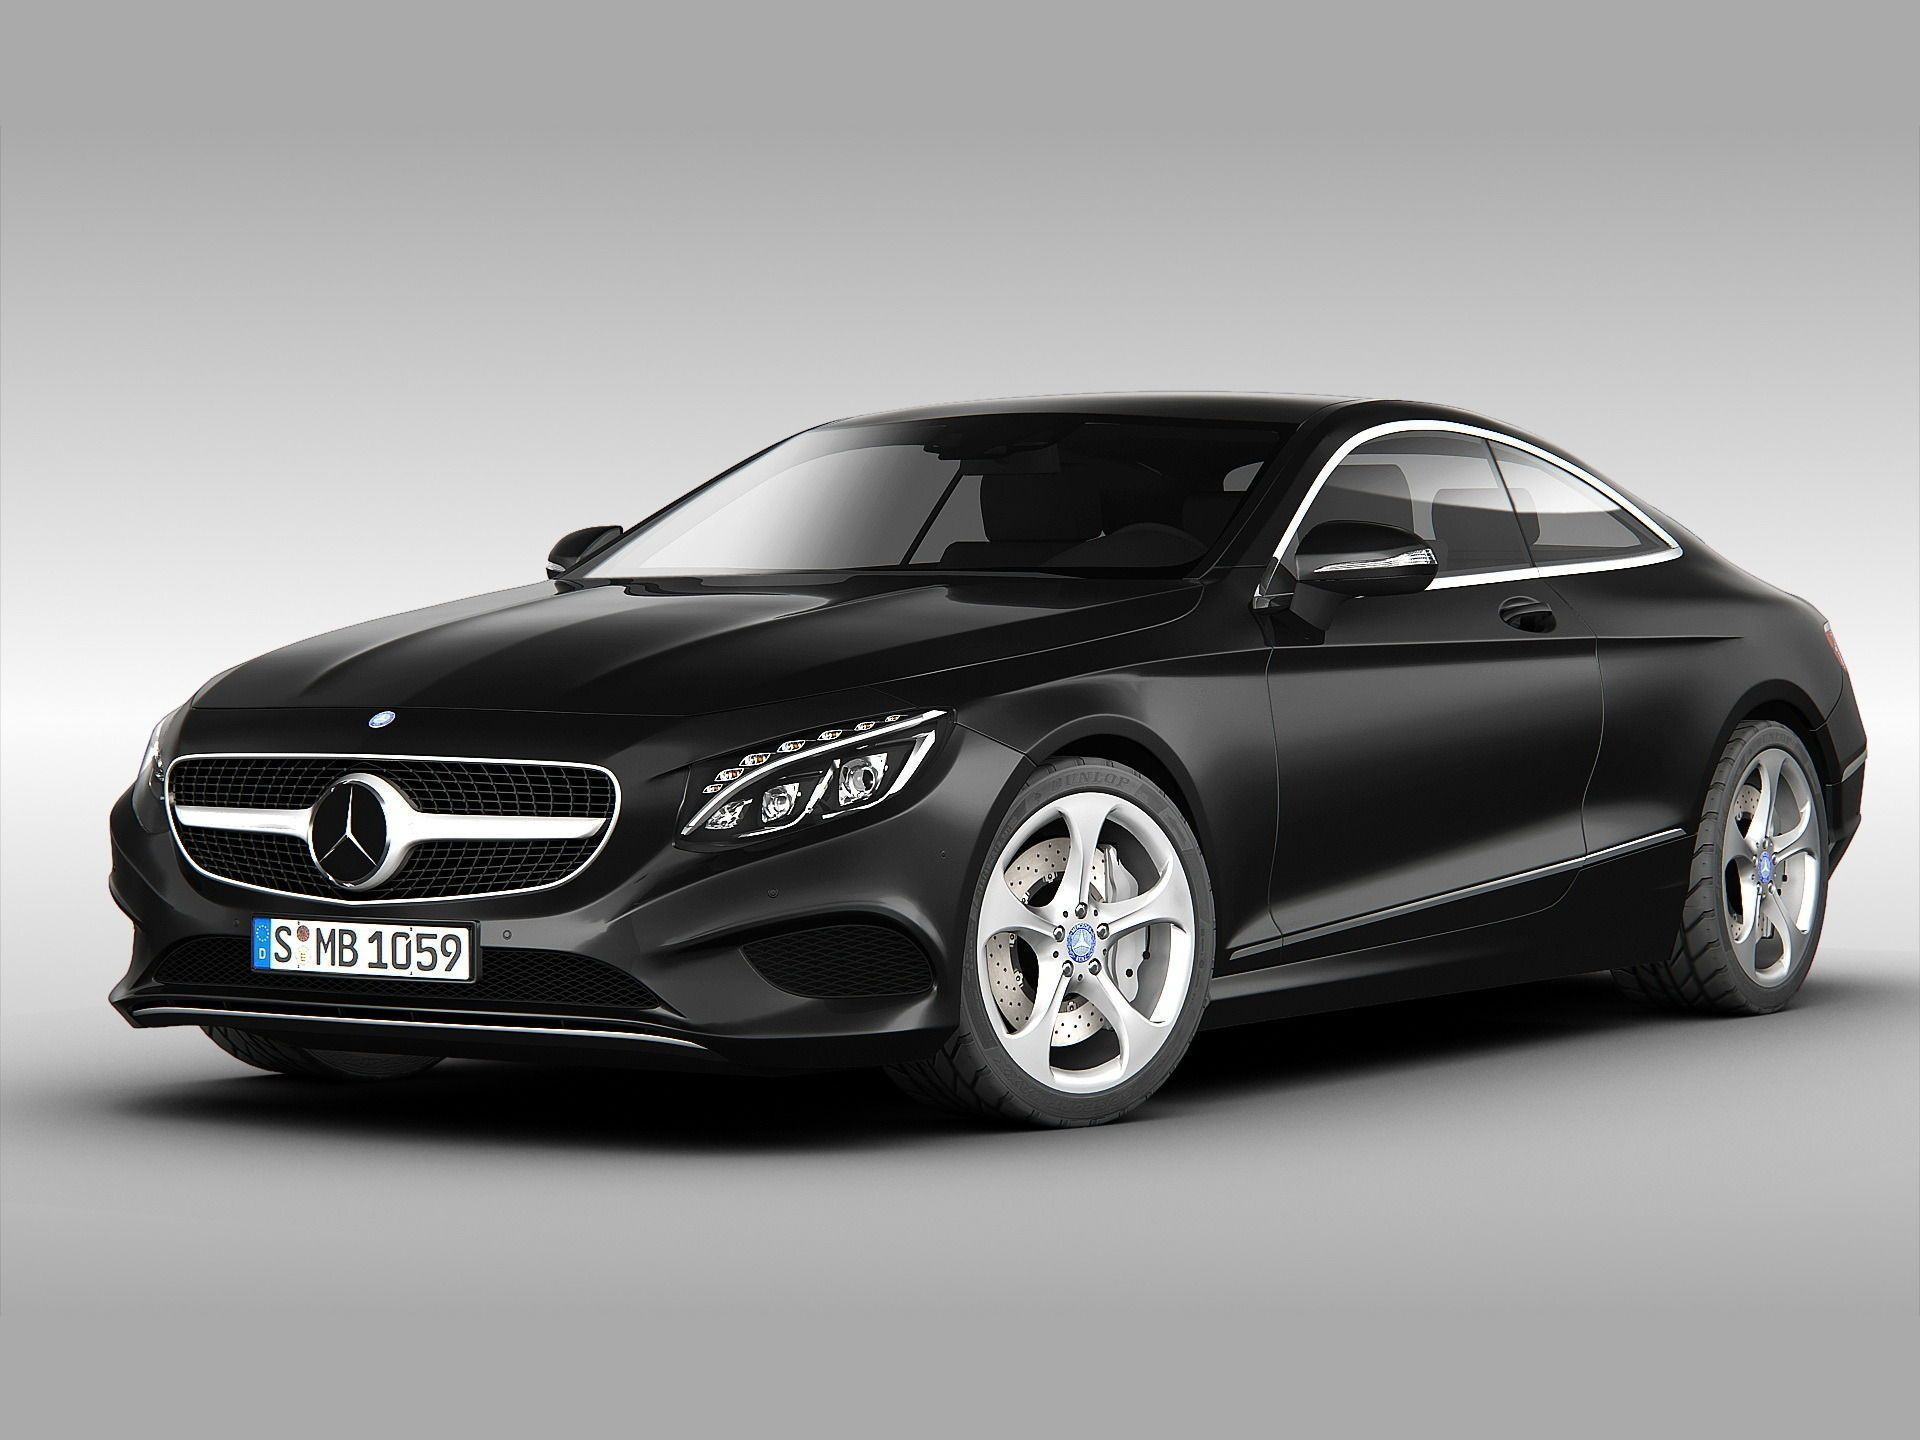 2015 mercedes c class coupe black | cars | pinterest | cars